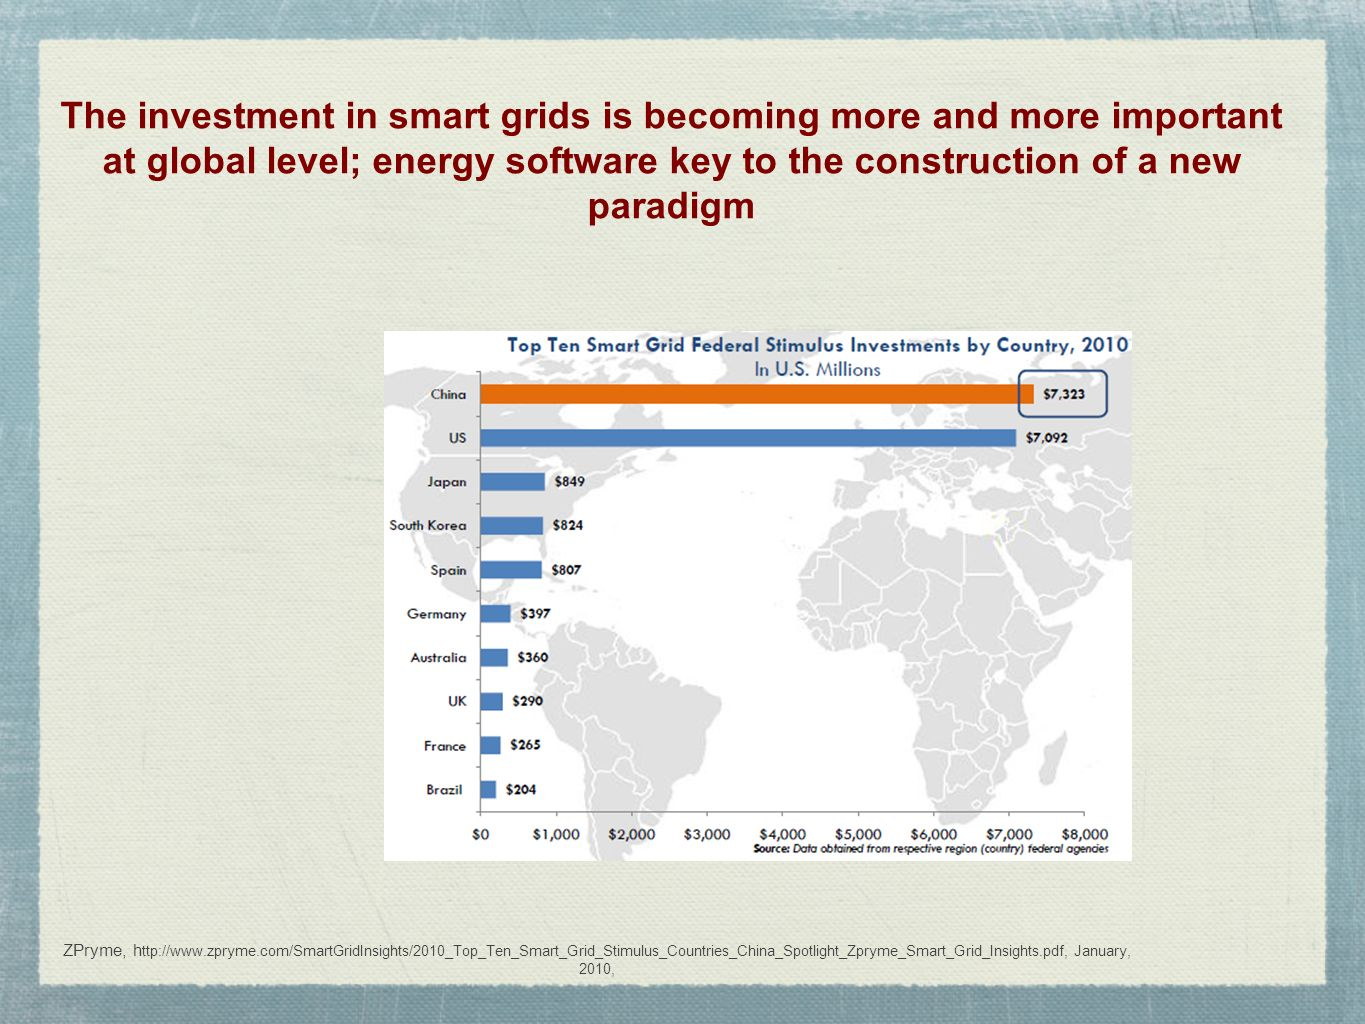 ZPryme, h ttp://www.zpryme.com/SmartGridInsights/2010_Top_Ten_Smart_Grid_Stimulus_Countries_China_Spotlight_Zpryme_Smart_Grid_Insights.pdf, January, 2